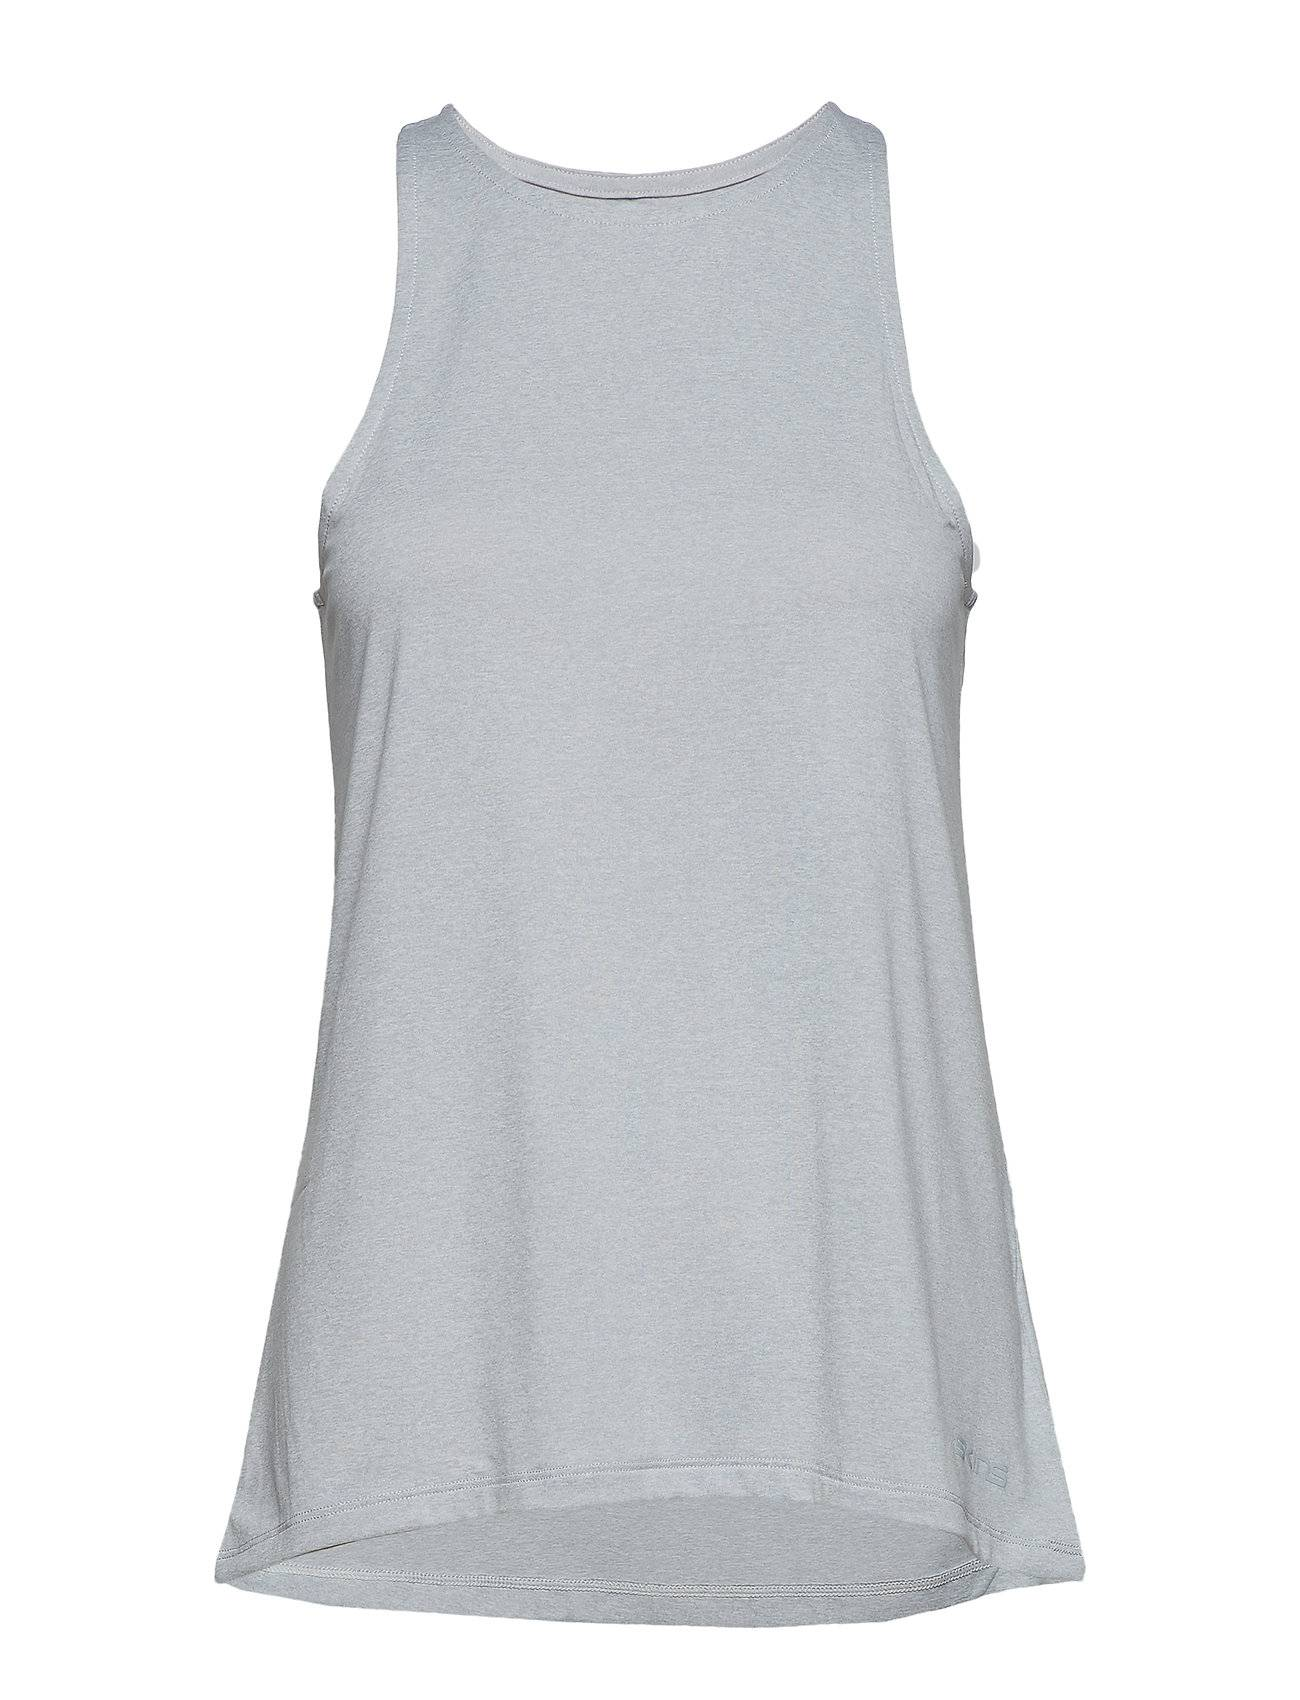 Skins Activewear Siken Womens Tank Top T-shirts & Tops Sleeveless Harmaa Skins